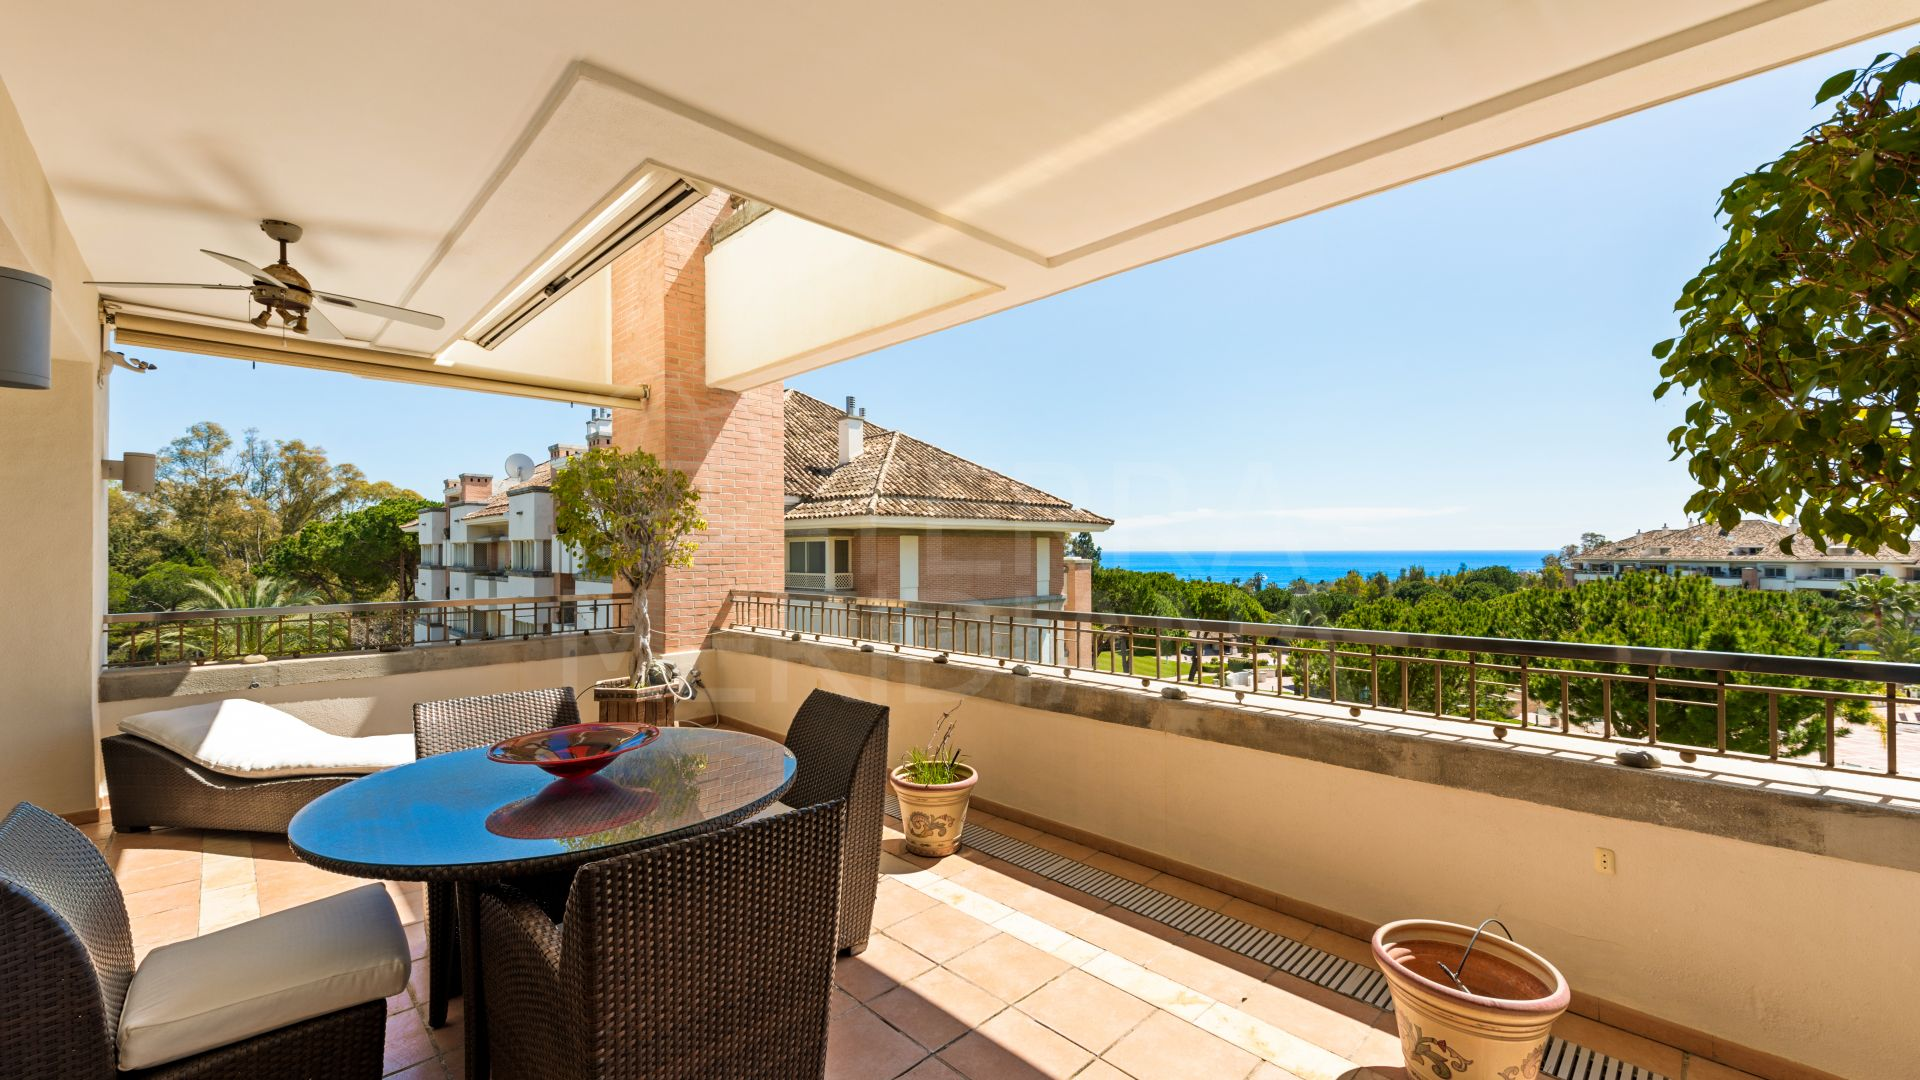 Apartment with sea views for sale in the development of La Trinidad, Marbella Golden Mile